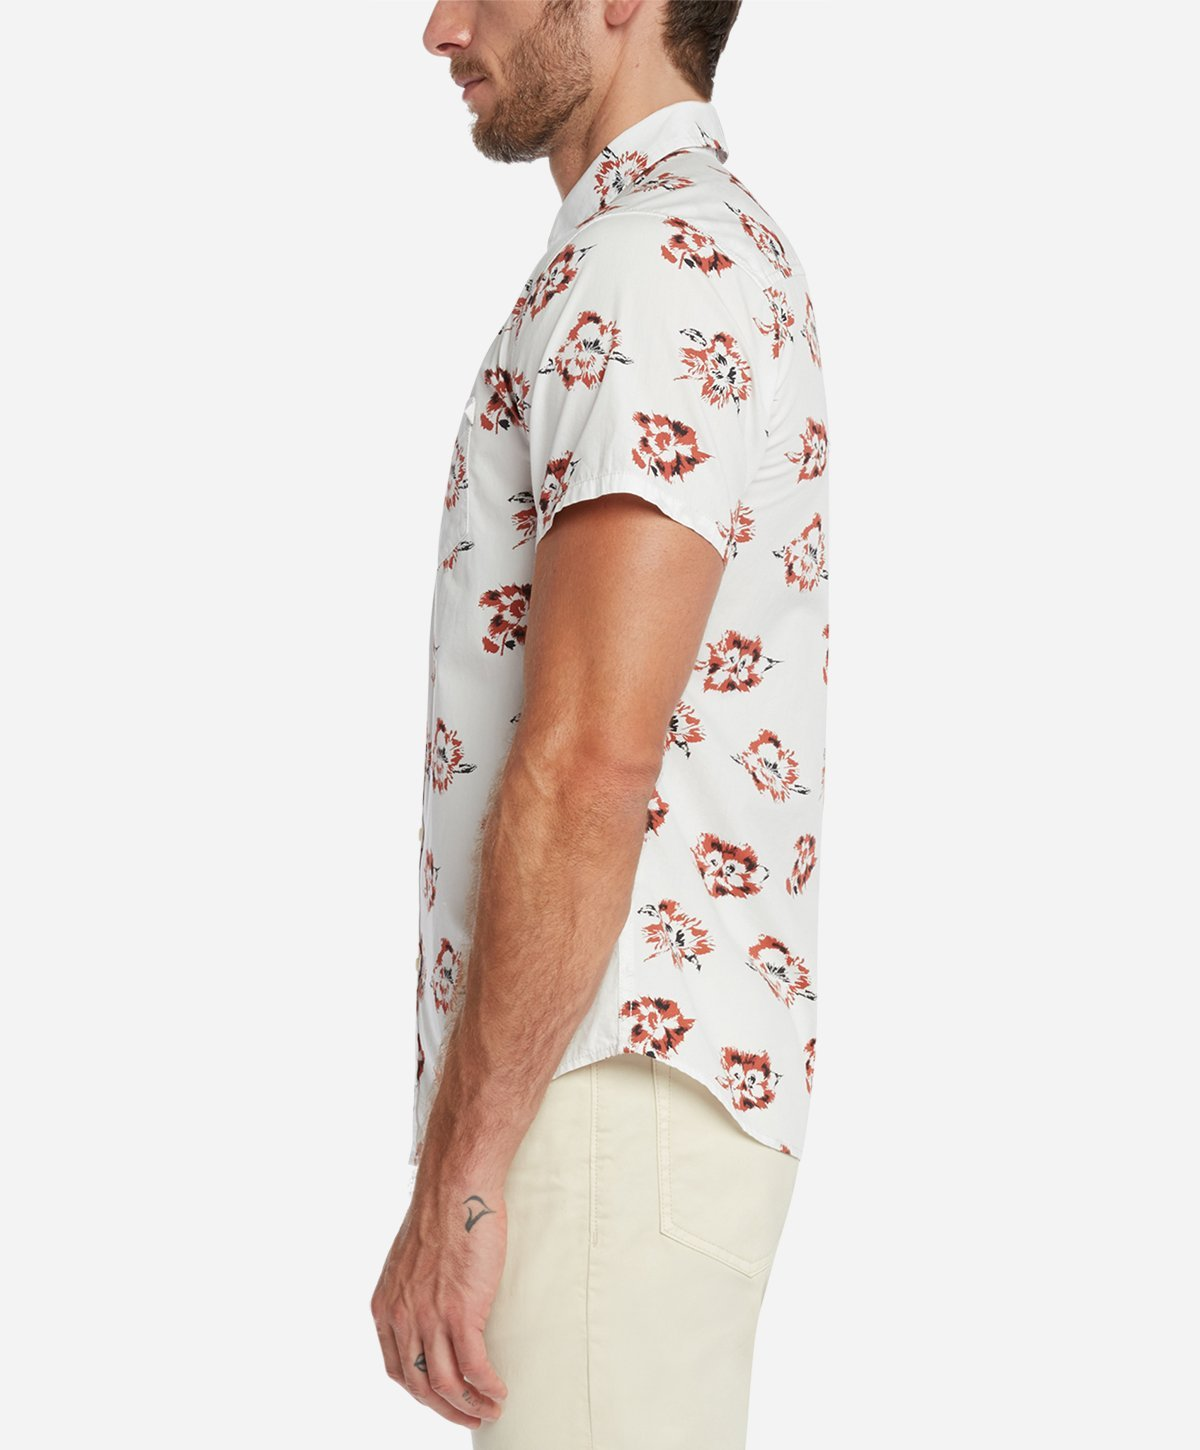 Rosarito Short Sleeve Shirt - White